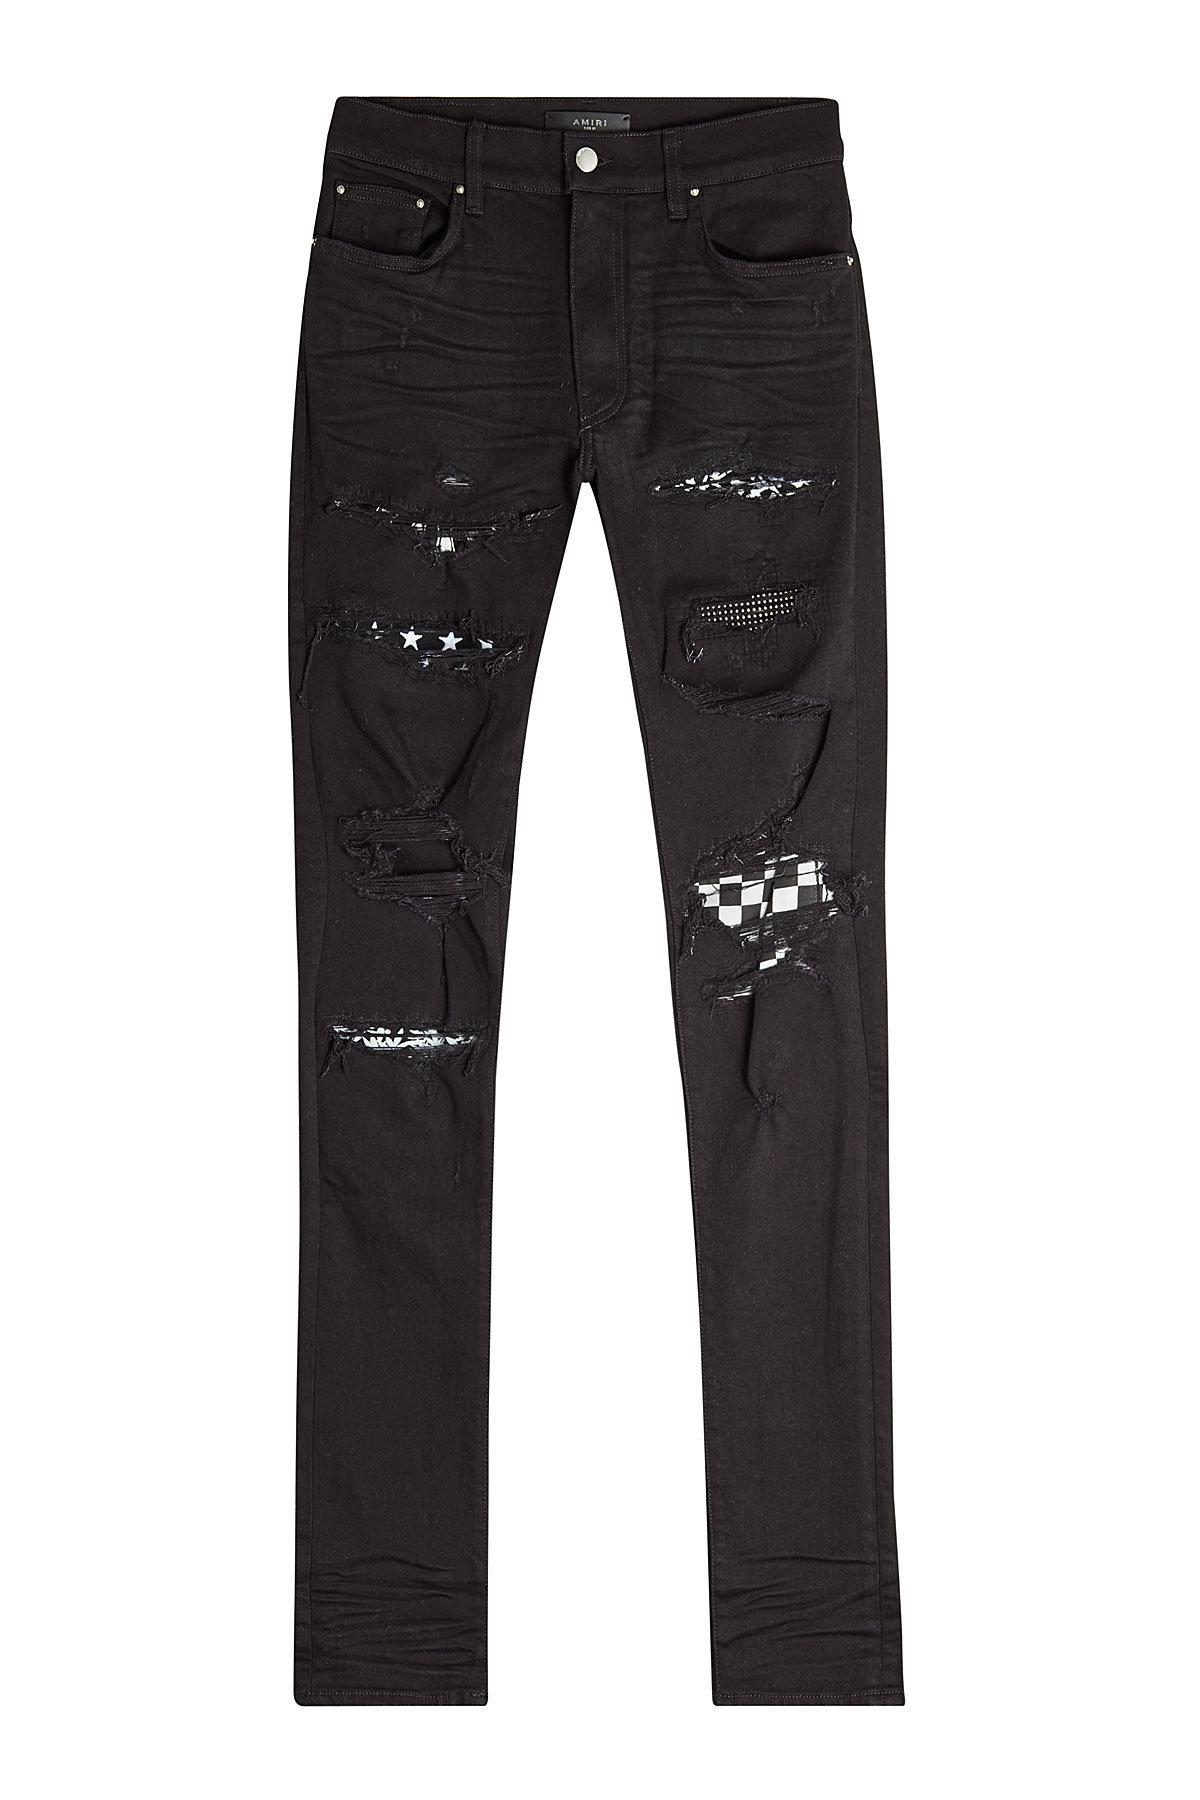 biggest discount buy best undefeated x Art Patch Distressed Skinny Jeans in Black